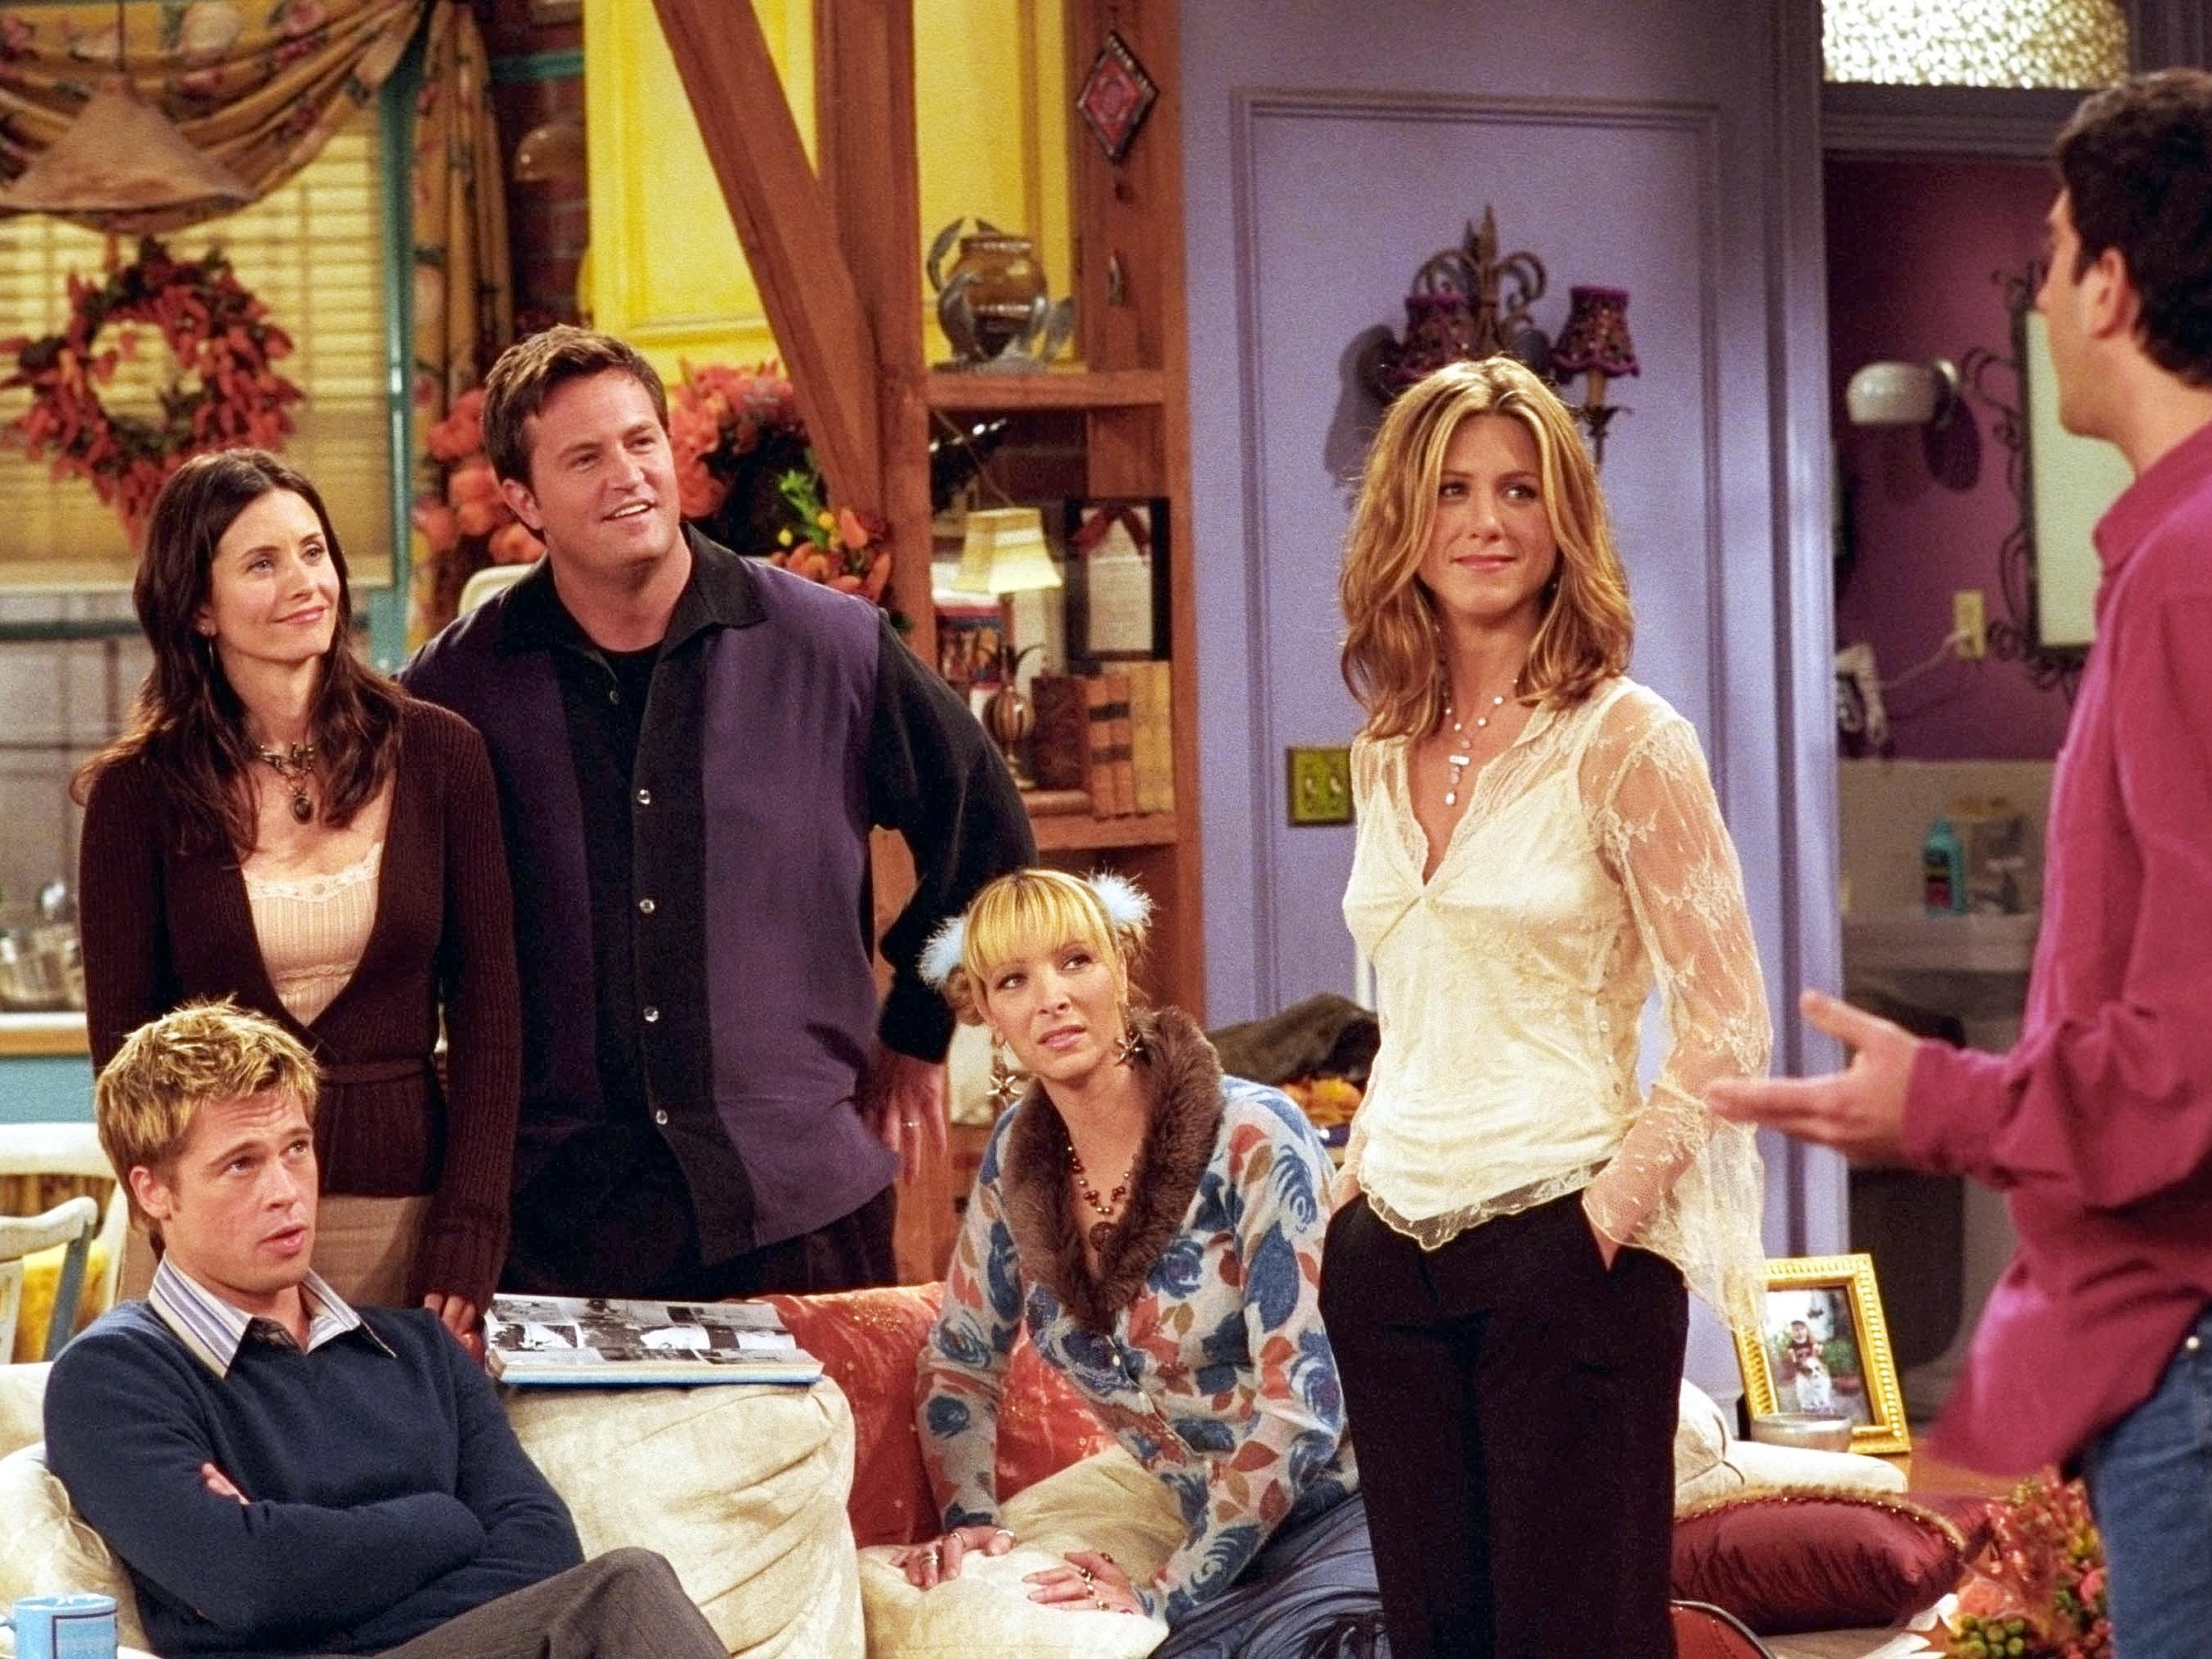 """Pitt guest-starred in the November 2001 Thanksgiving episode of """"Friends,"""" playing a formerly fat classmate of Rachel nursing a grudge against her for how she treated him."""